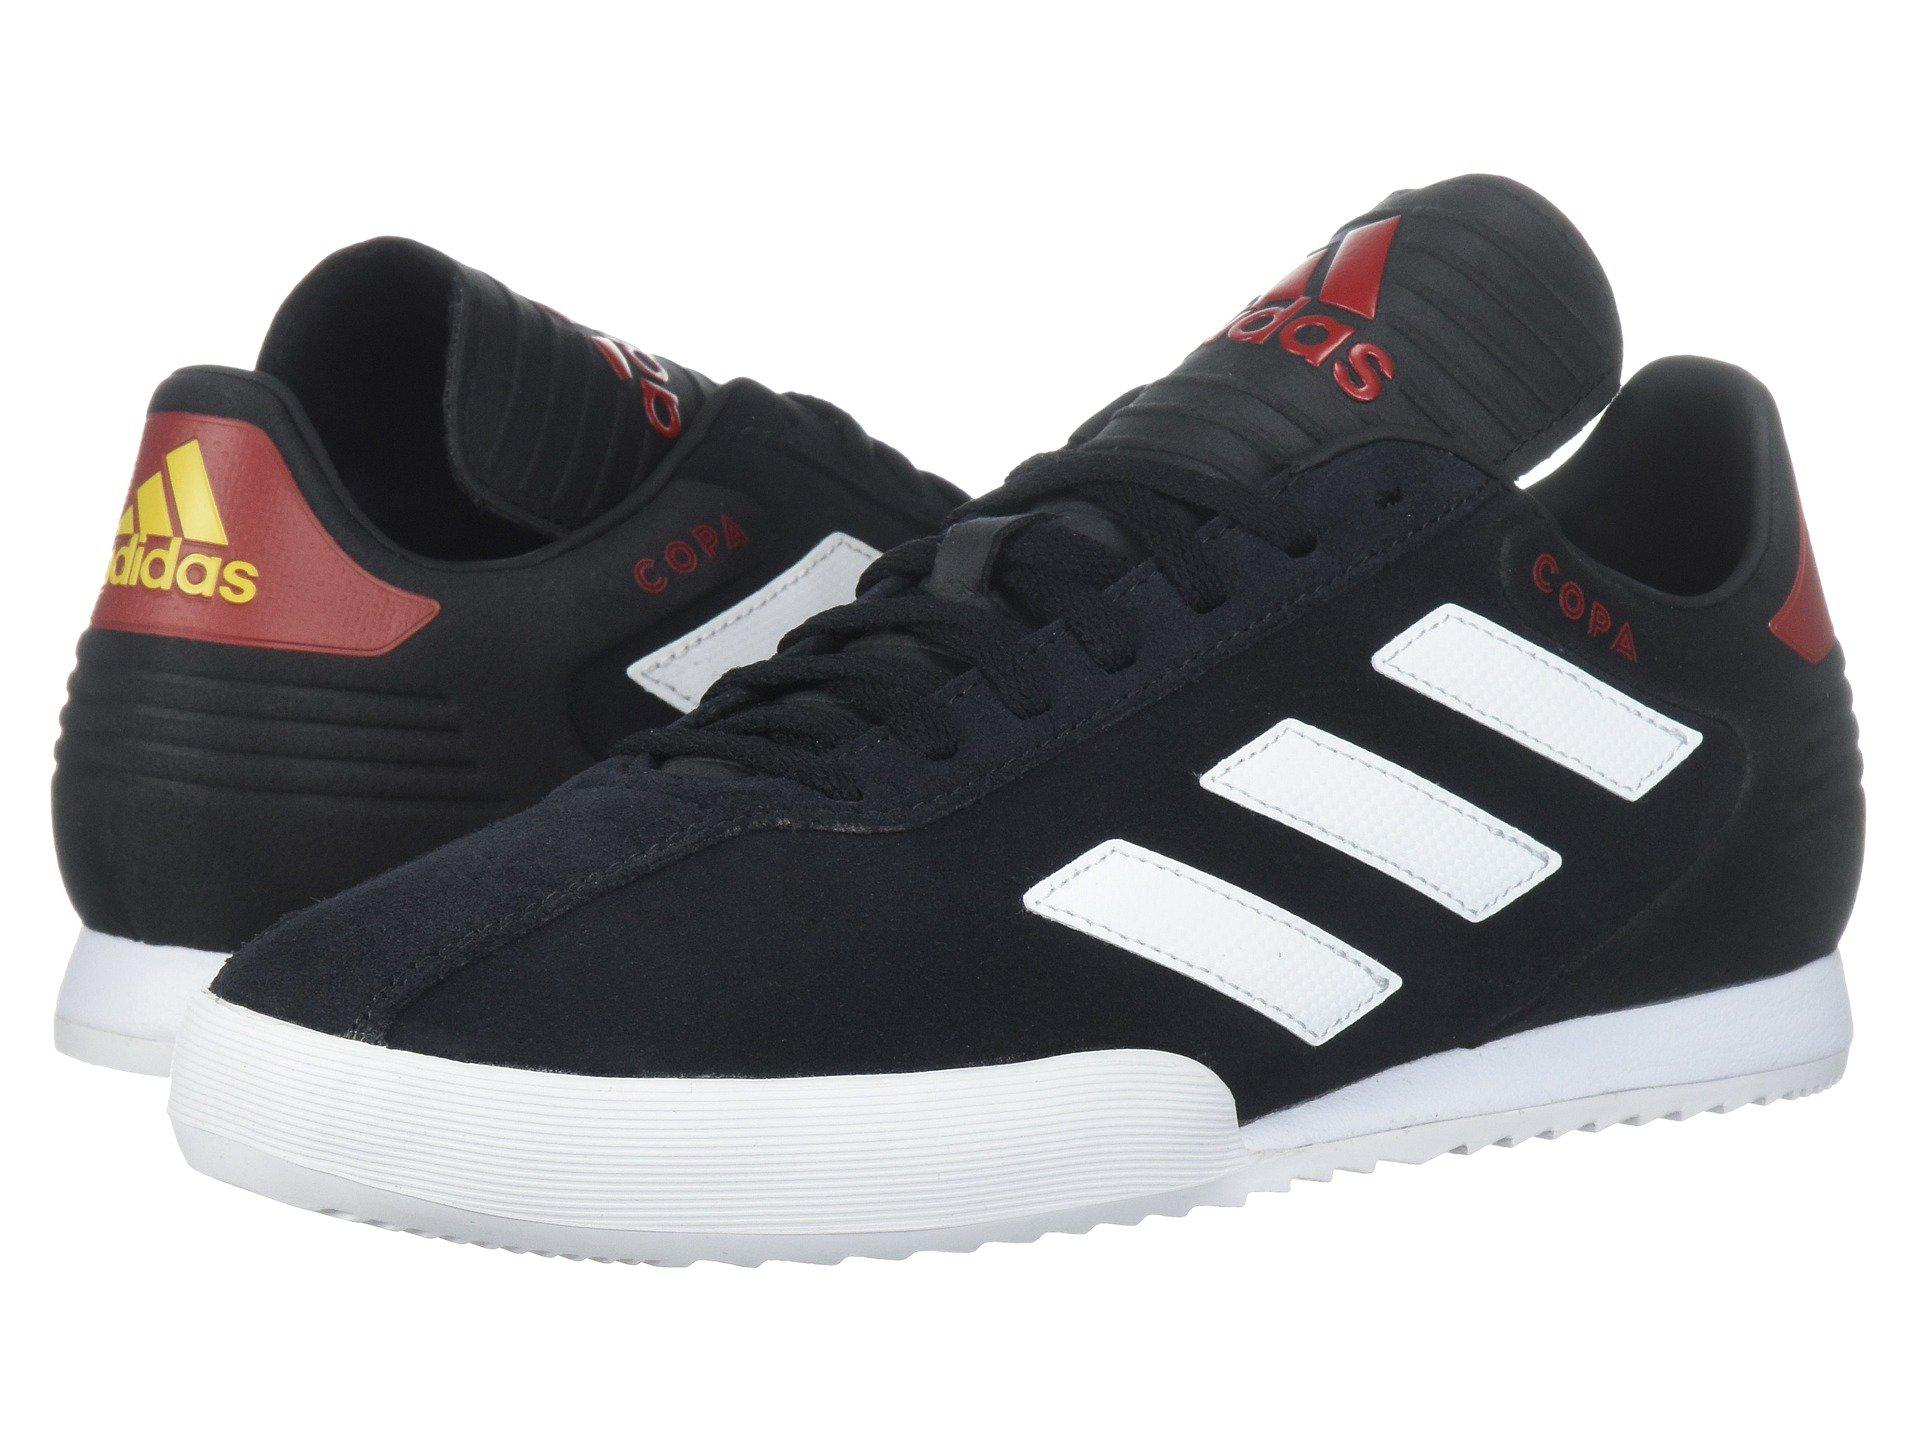 newest 3dfaa 31832 Lyst - Adidas Copa Super - Country Pack for Men